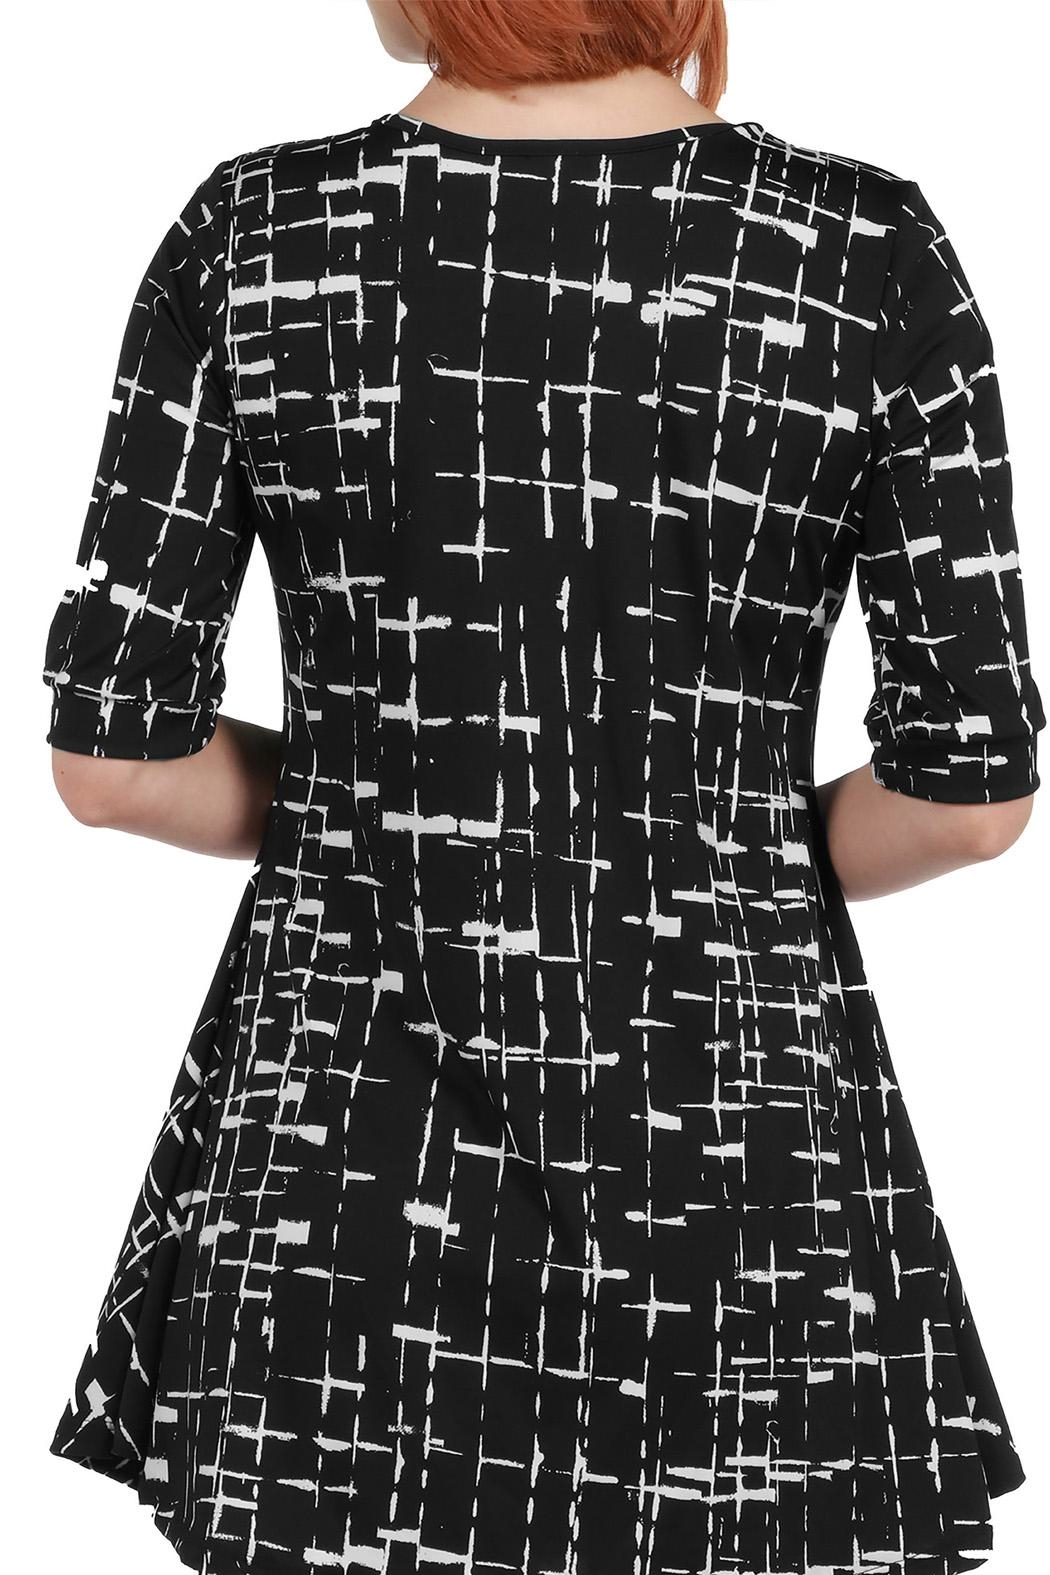 24/7 Comfort Apparel Black Tunic Top - Side Cropped Image